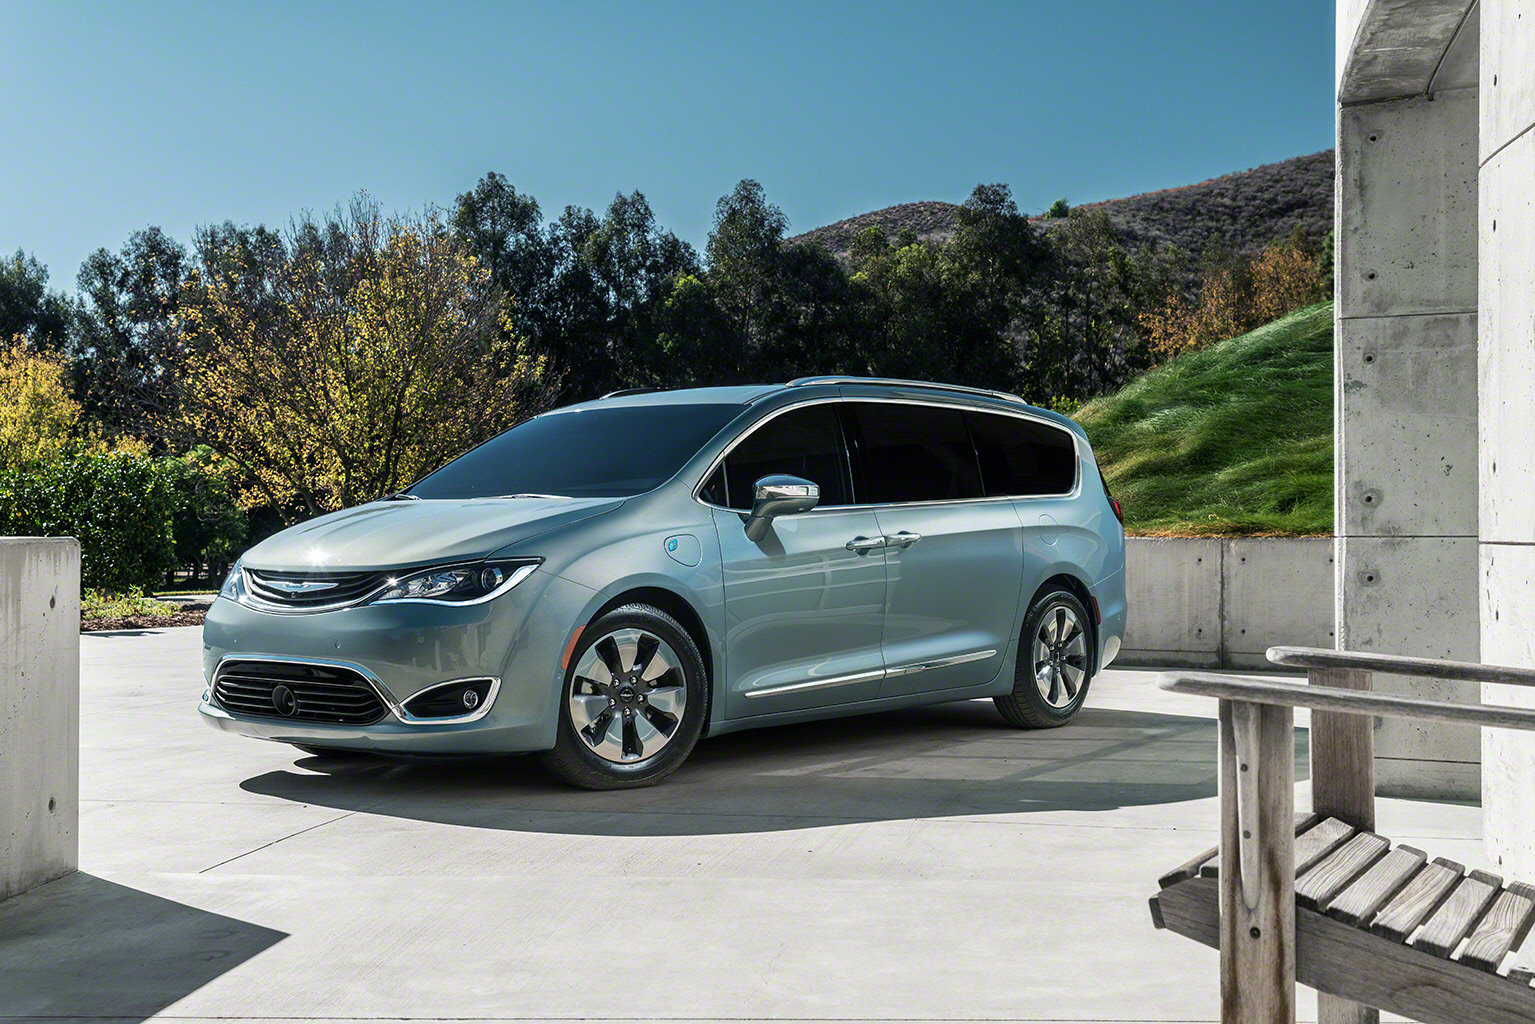 003-2017-chrysler-pacifica-hybrid-1